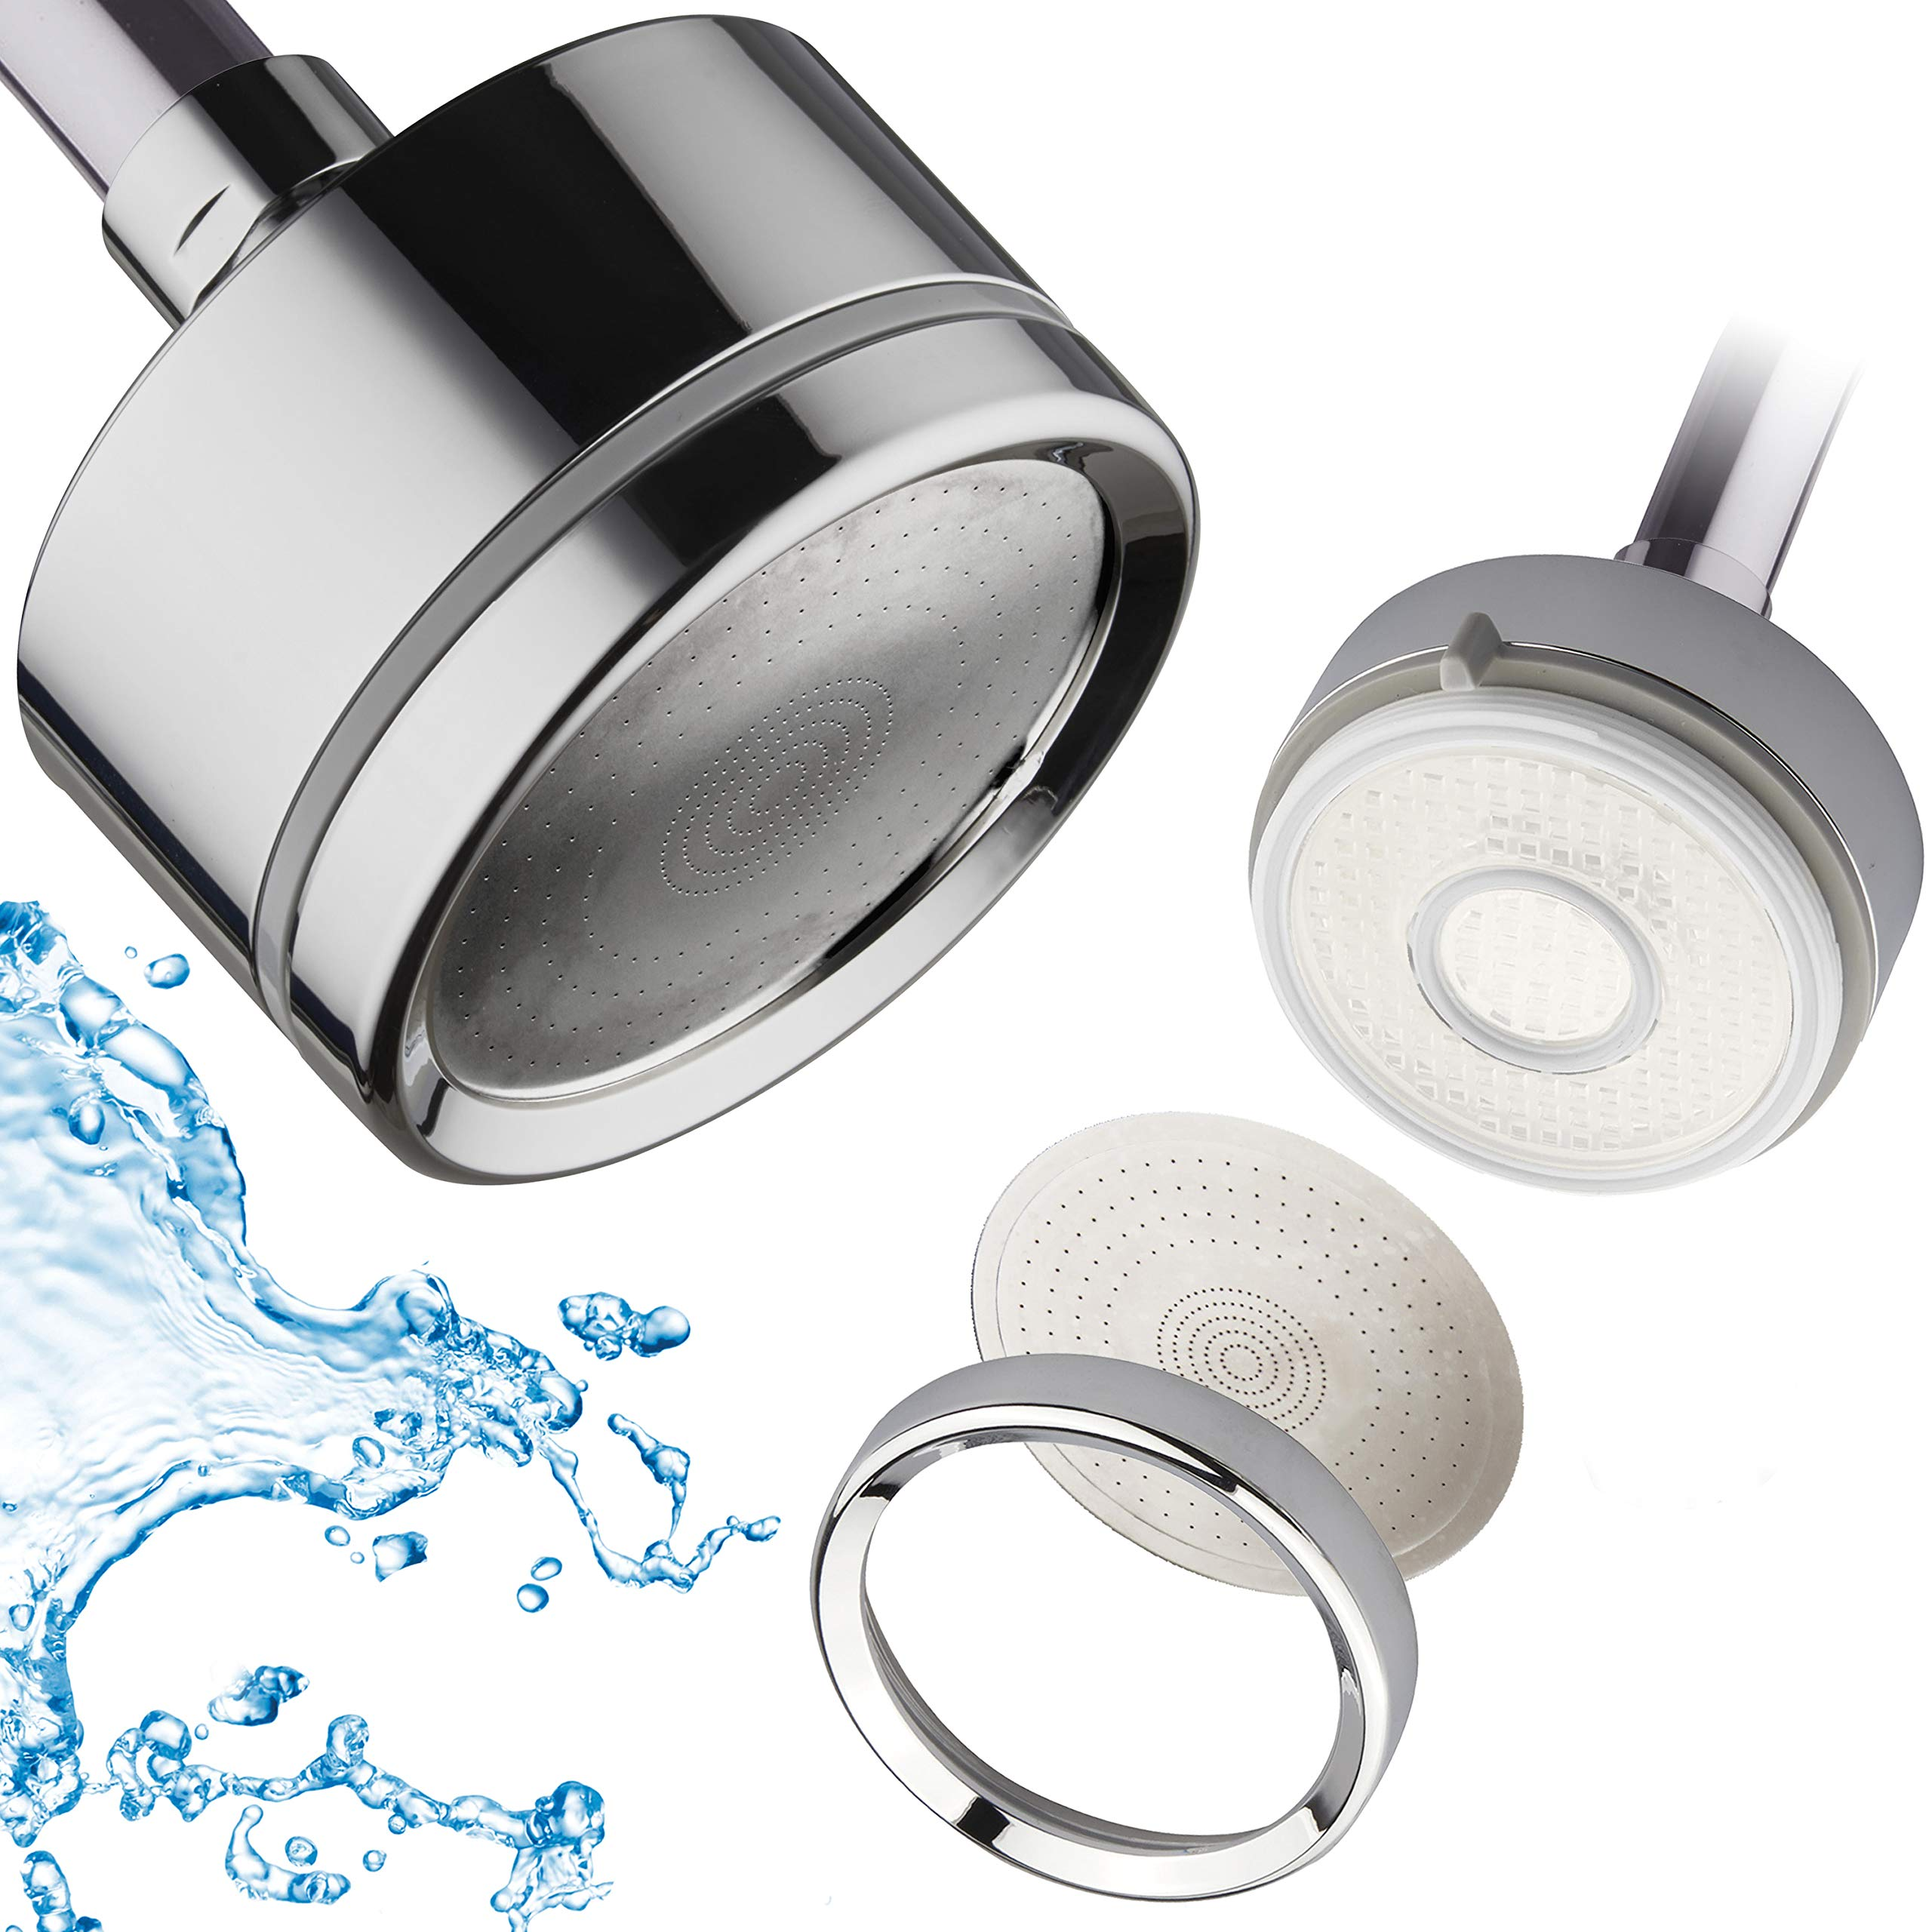 LaserJet Luxury Shower Water Filter